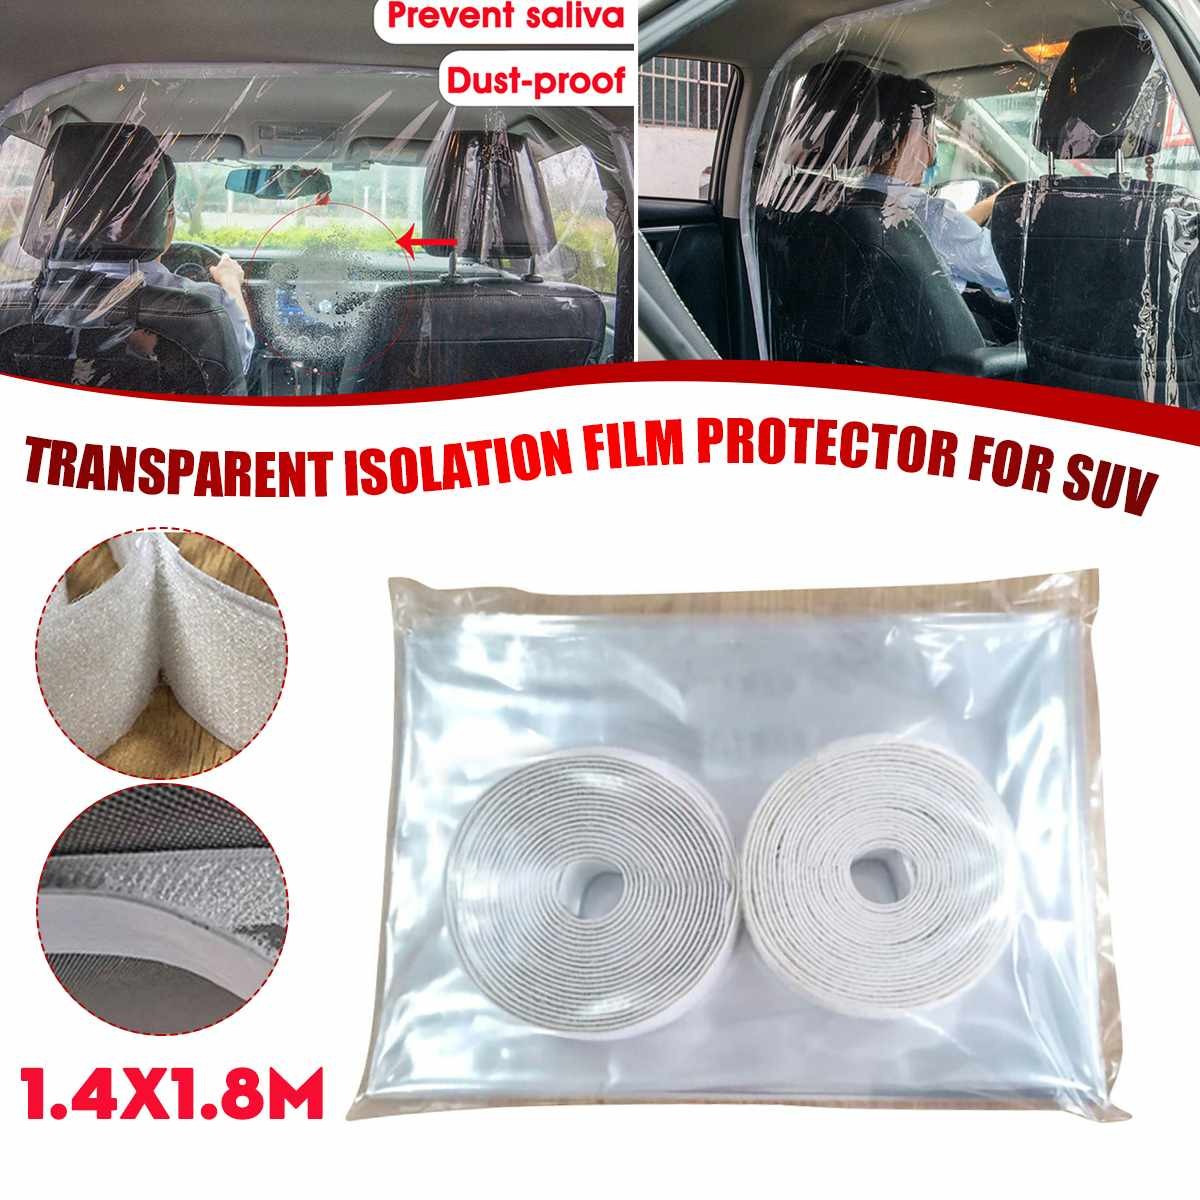 1.4X1.8m Car Transparent Partition Film Protection Taxi Cab Isolation Curtain Sealed Anti-droplets Proof